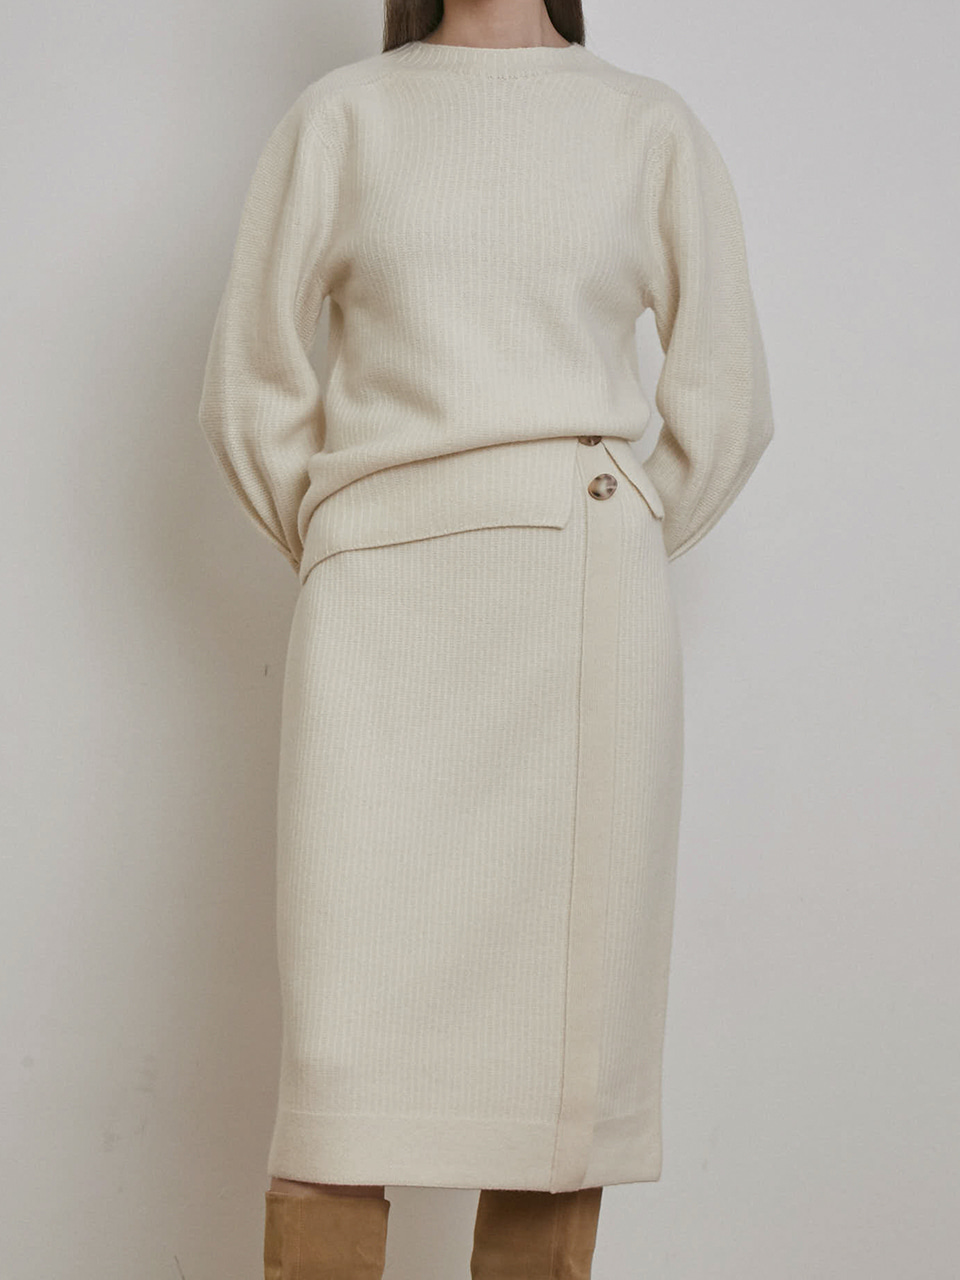 ⓗ CASHMERE BUTTON DETAILED KNIT SKIRT [BLACK][IVORY]